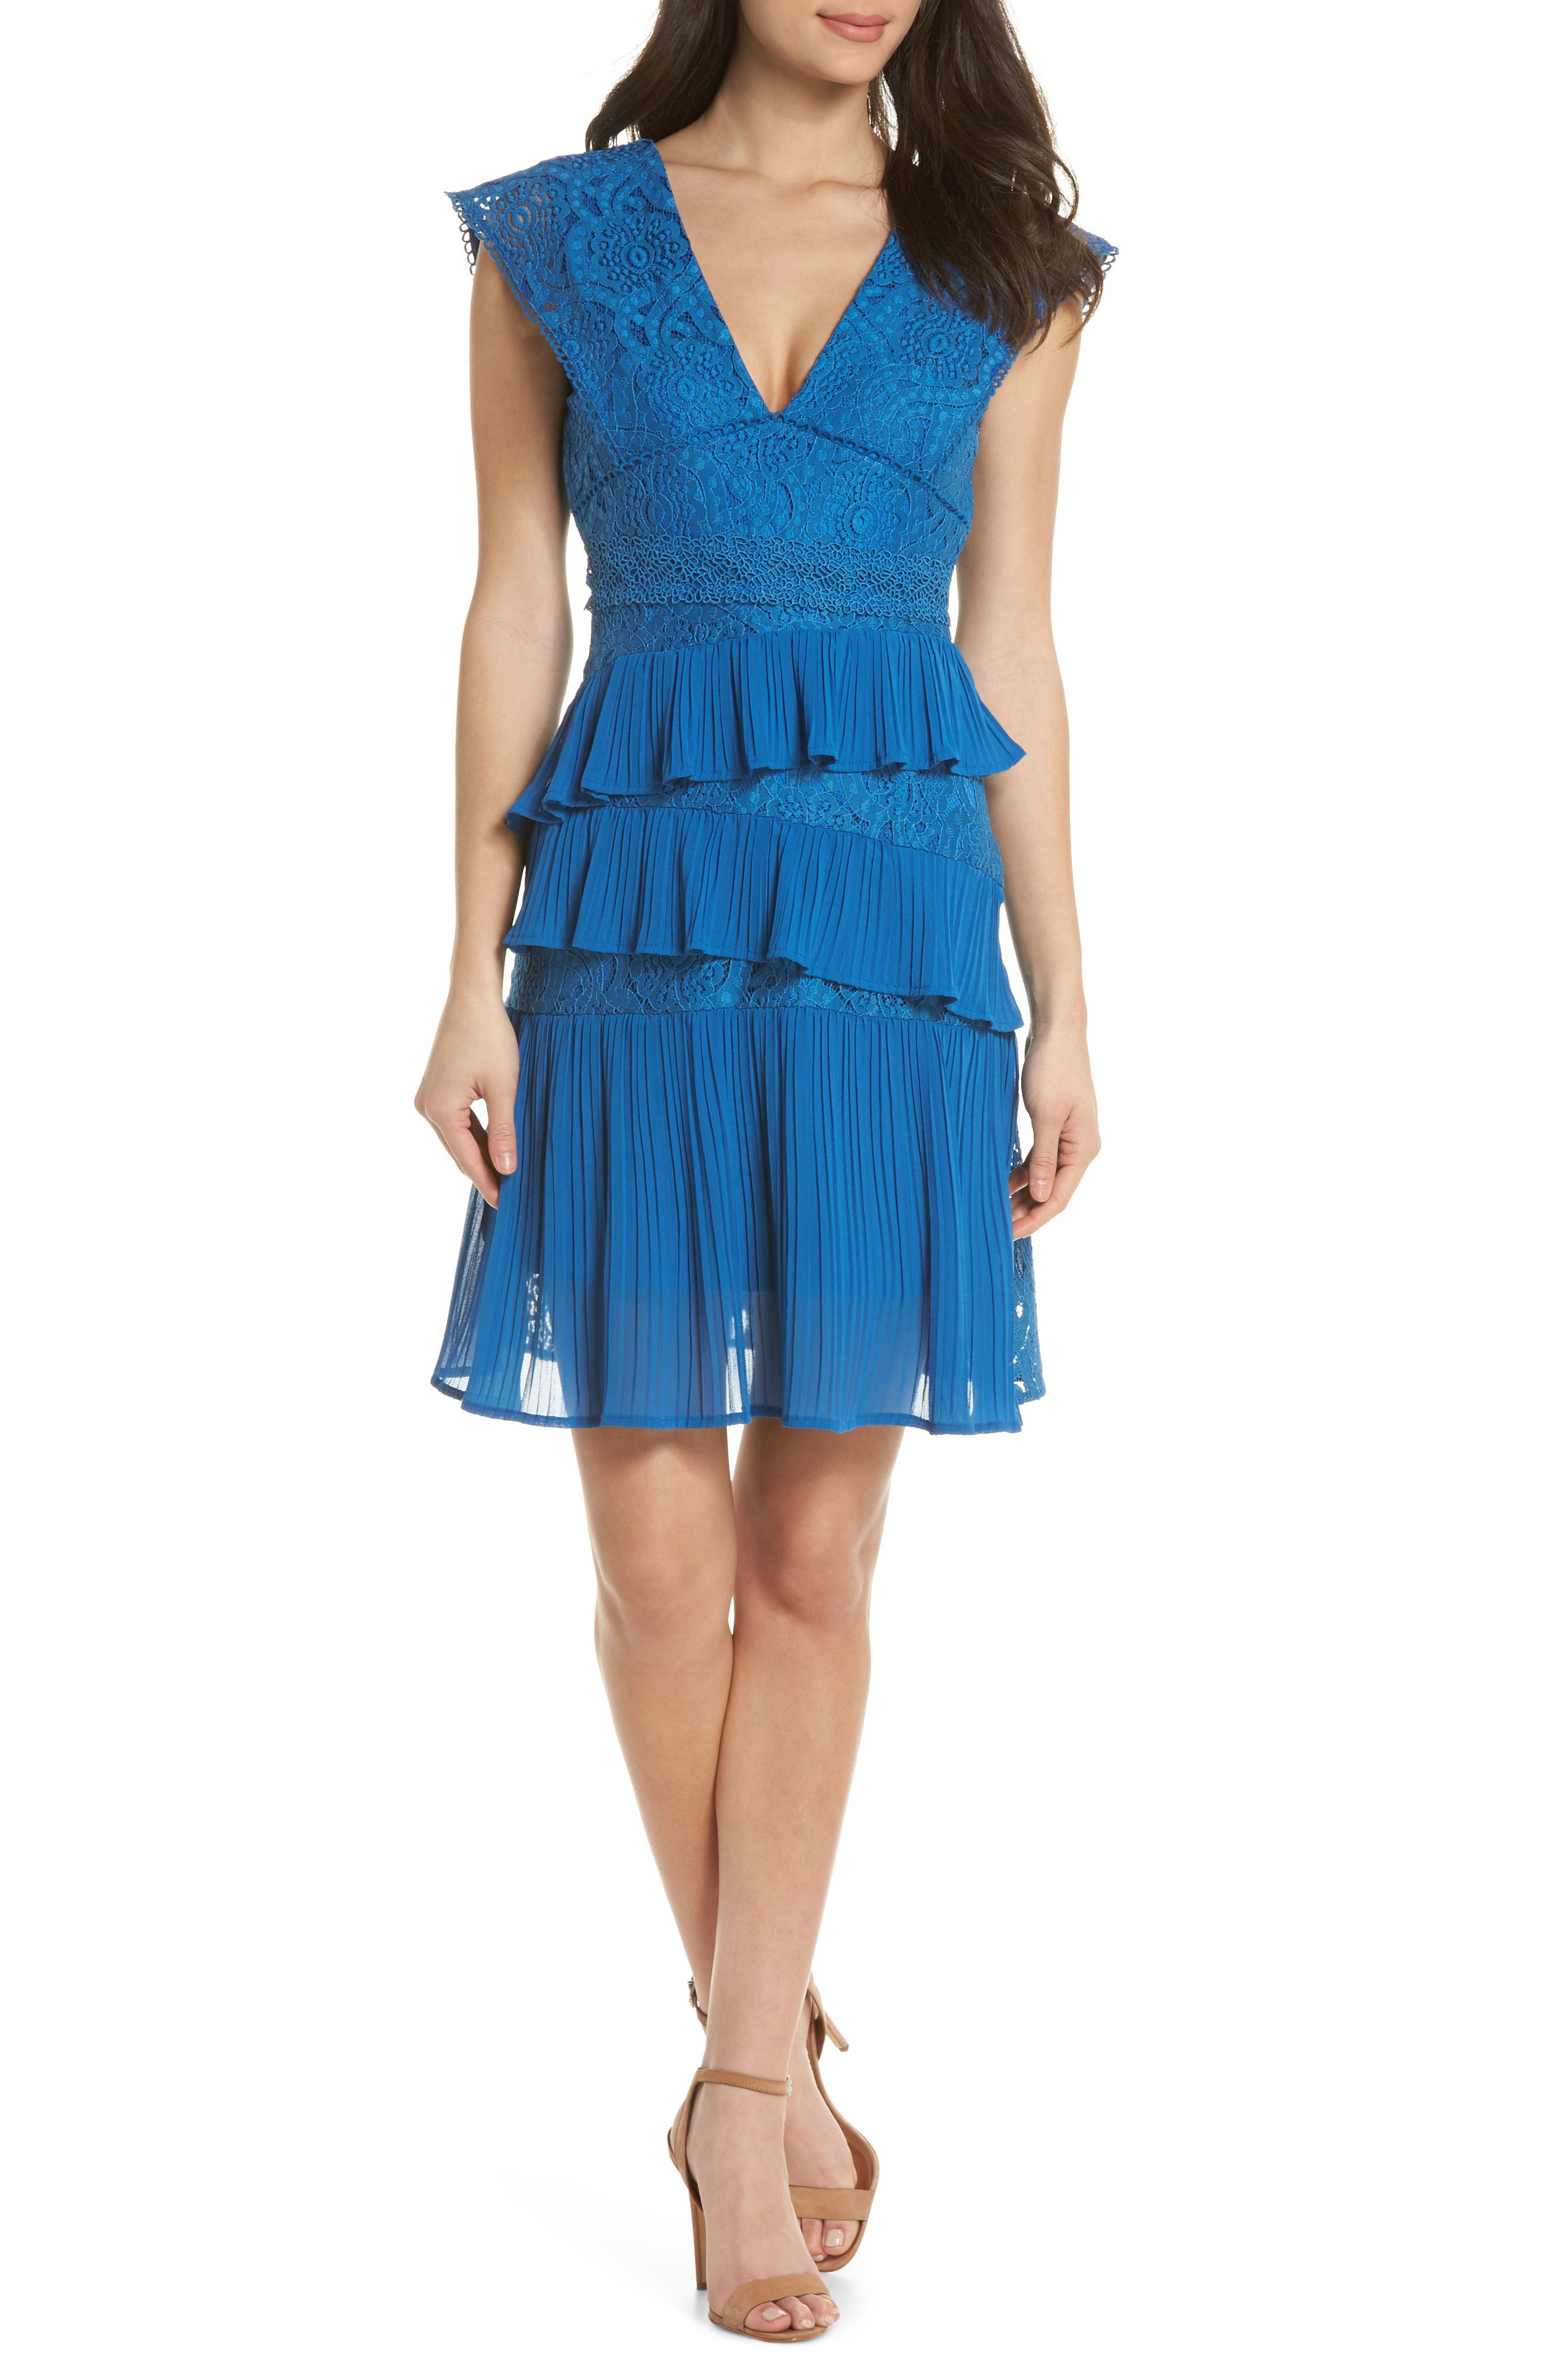 Clover Lace Tiered Dress,                             Main thumbnail 1, color,                             Navy